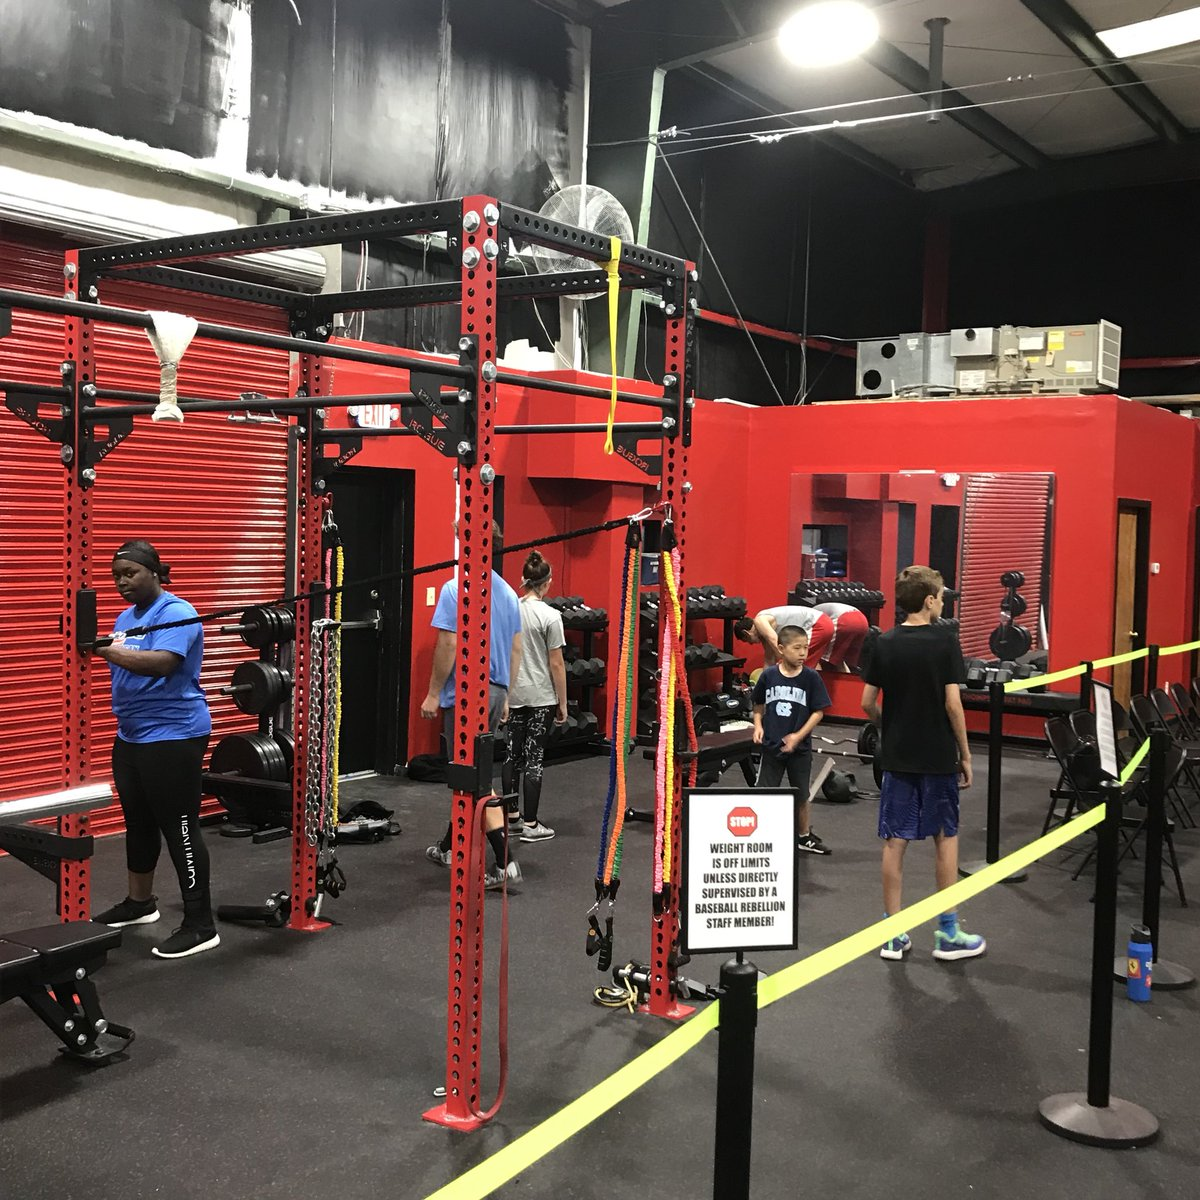 Particular Active Edge Upright Athlete Active Kick Out Clause Active Kick Out Contract Upright Athlete Clinic Kicks Off Plenty Ofspots Still Check Out To Learnmore Baseball Rebellion On Edge houzz-03 Active Kick Out